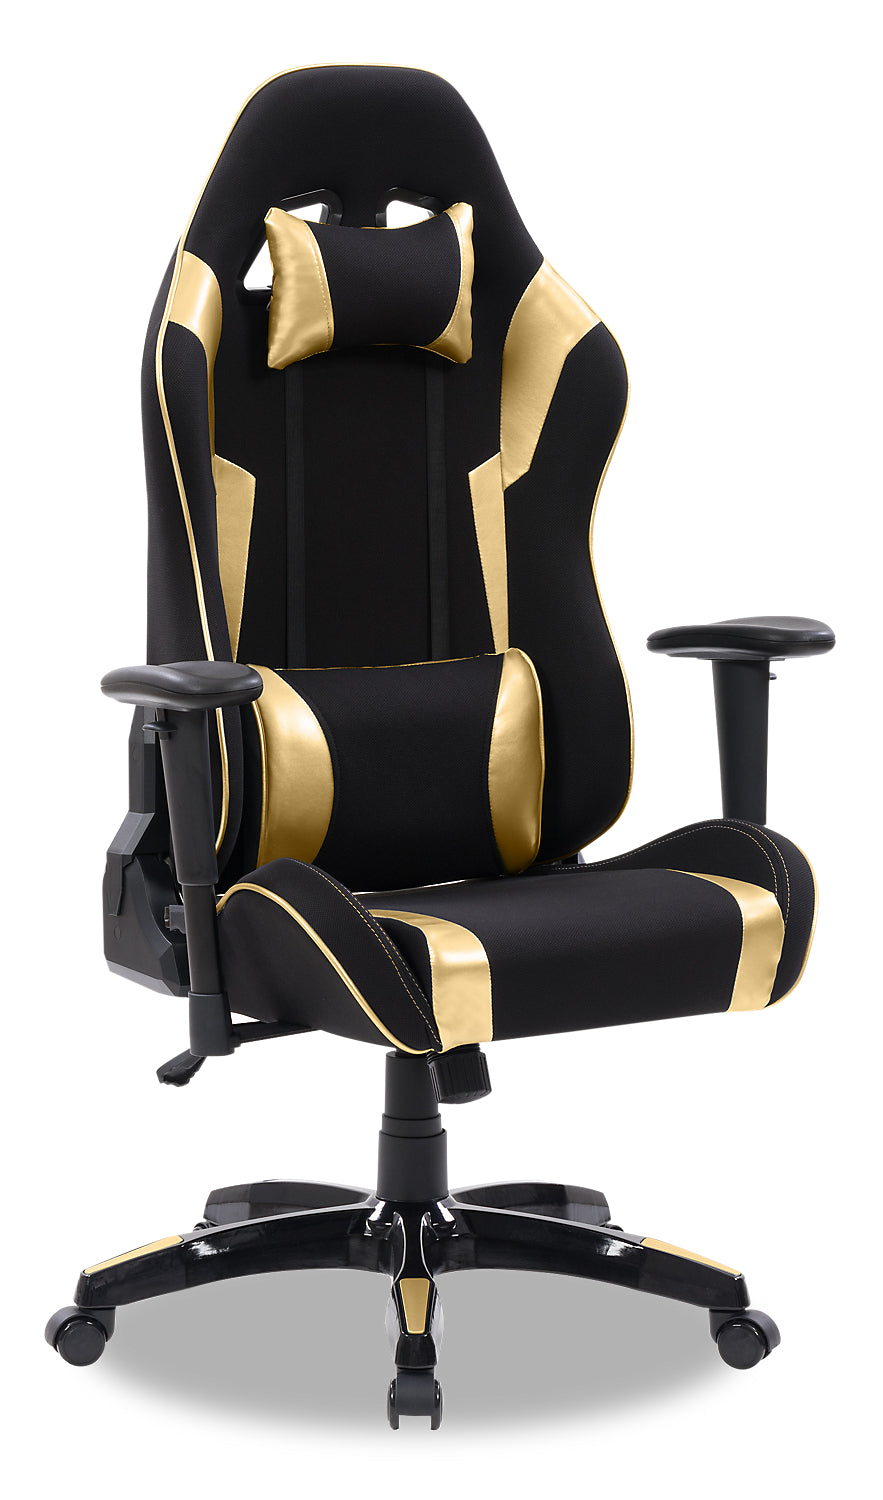 Gamer Chair Black And Gold The Brick